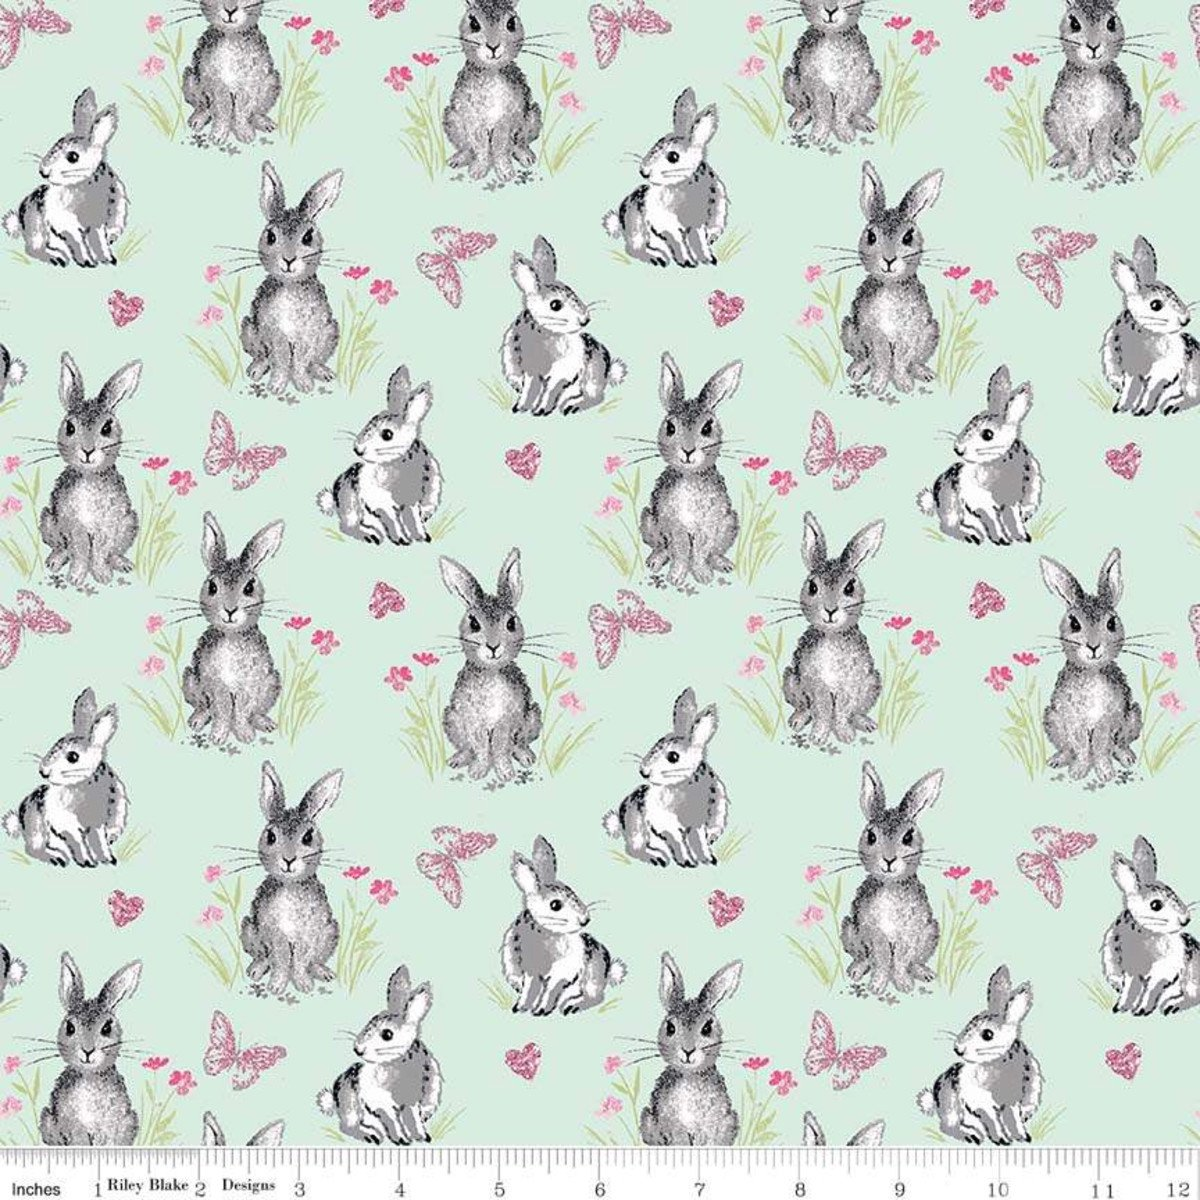 Riley Blake Pretty Bunnies and Flowers